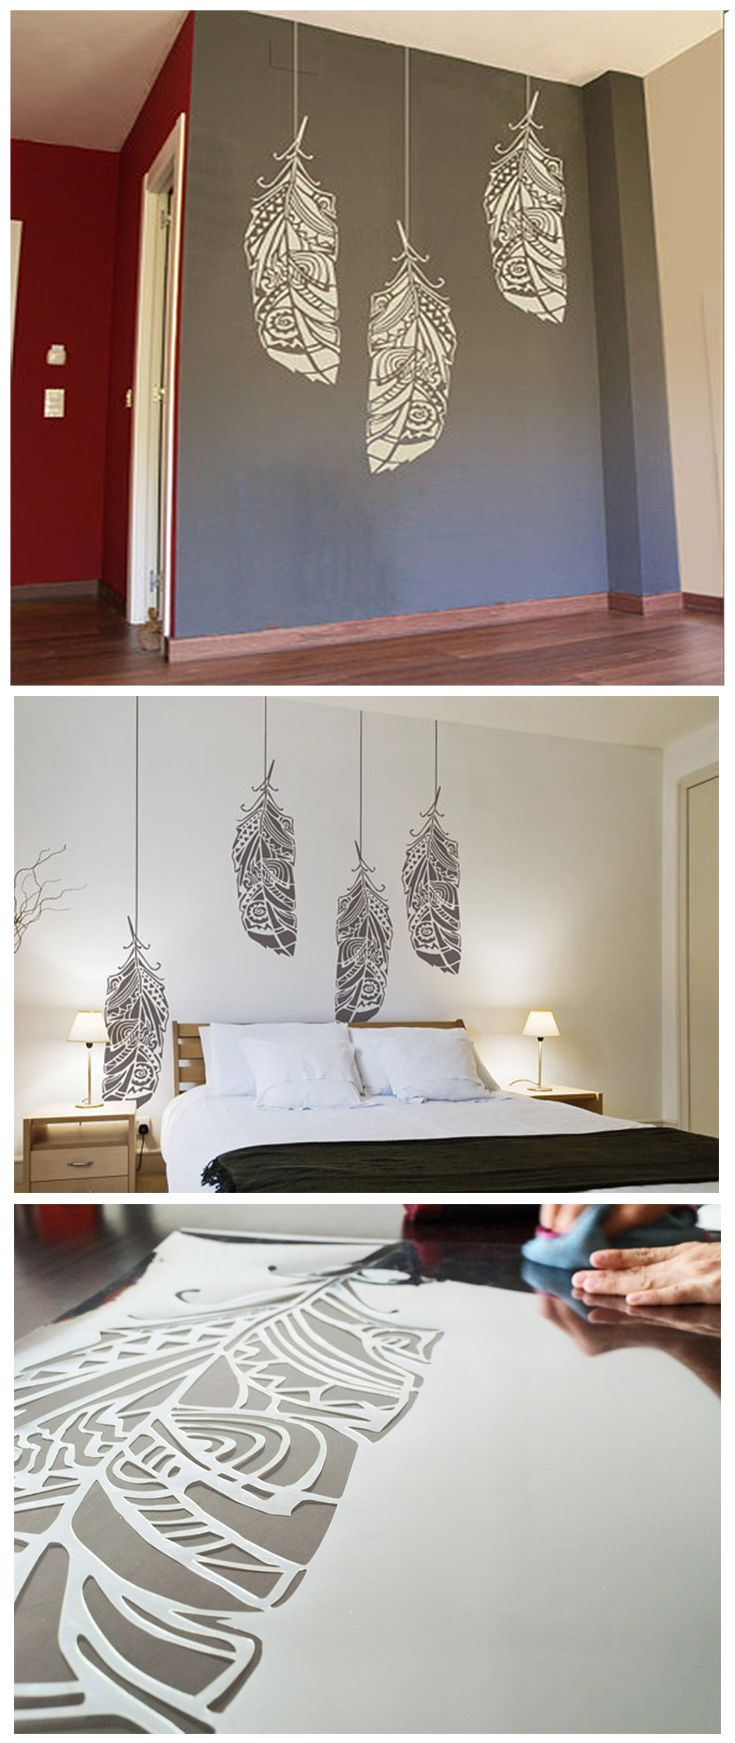 Feather stencil  ethnic decor element for wall  furniture or textile   Painting ideas for. 17 Best ideas about Creative Wall Painting on Pinterest   Wall